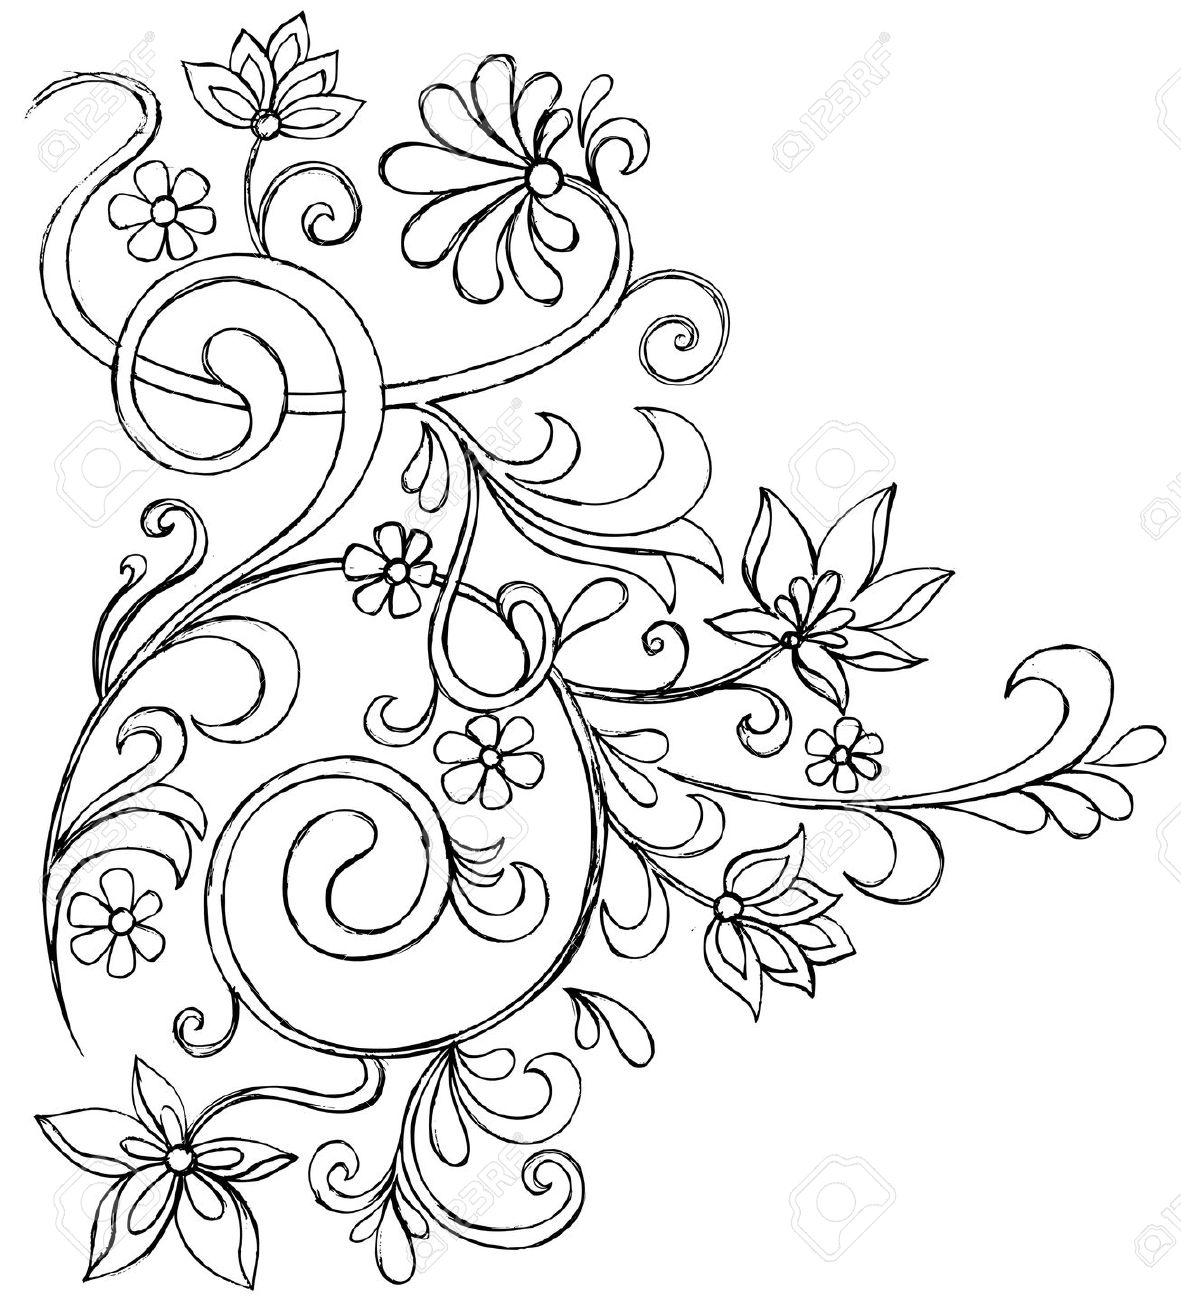 1181x1300 Sketchy Doodle Vines And Flowers Scroll Vector Drawing Royalty